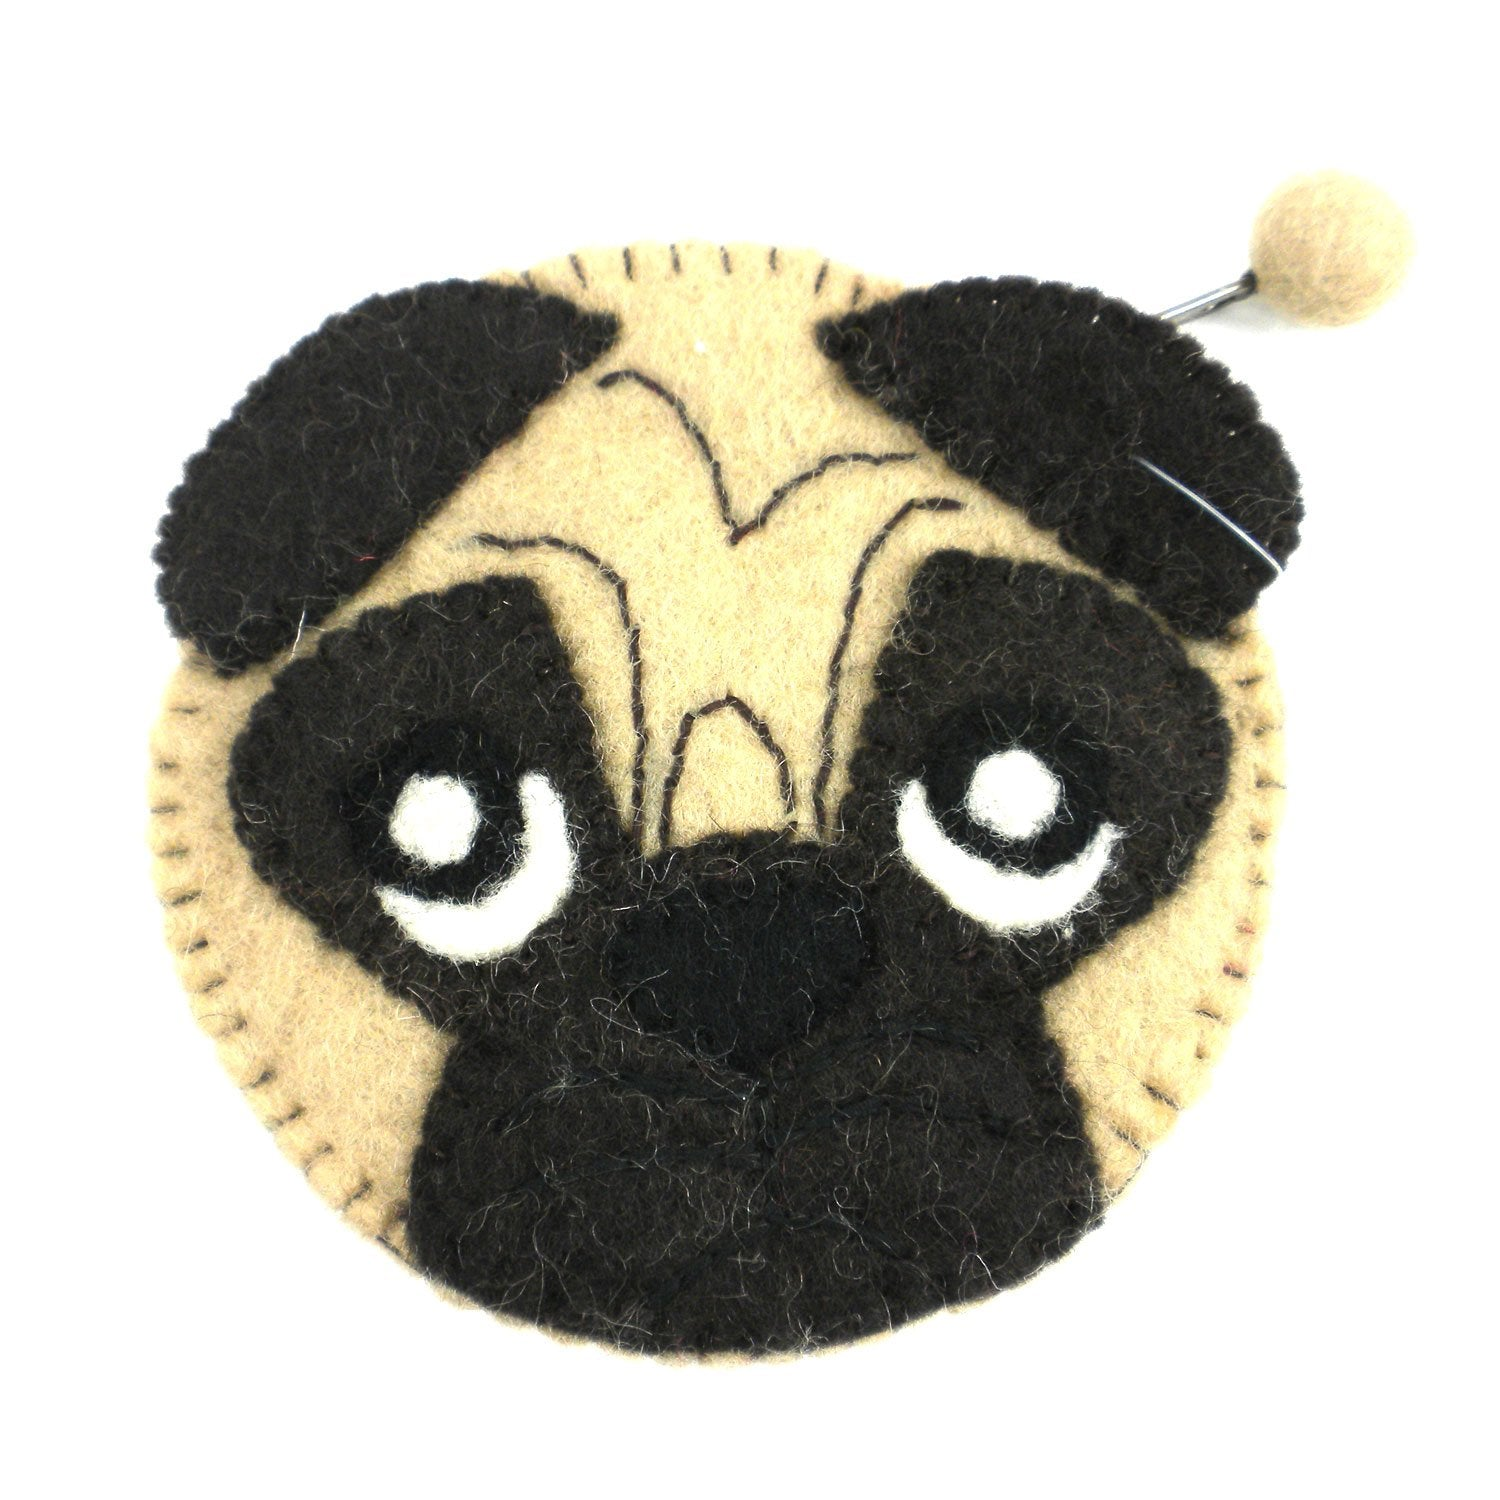 Hand Crafted Felt Pouch from Nepal: Coin Purse, Pug Felt